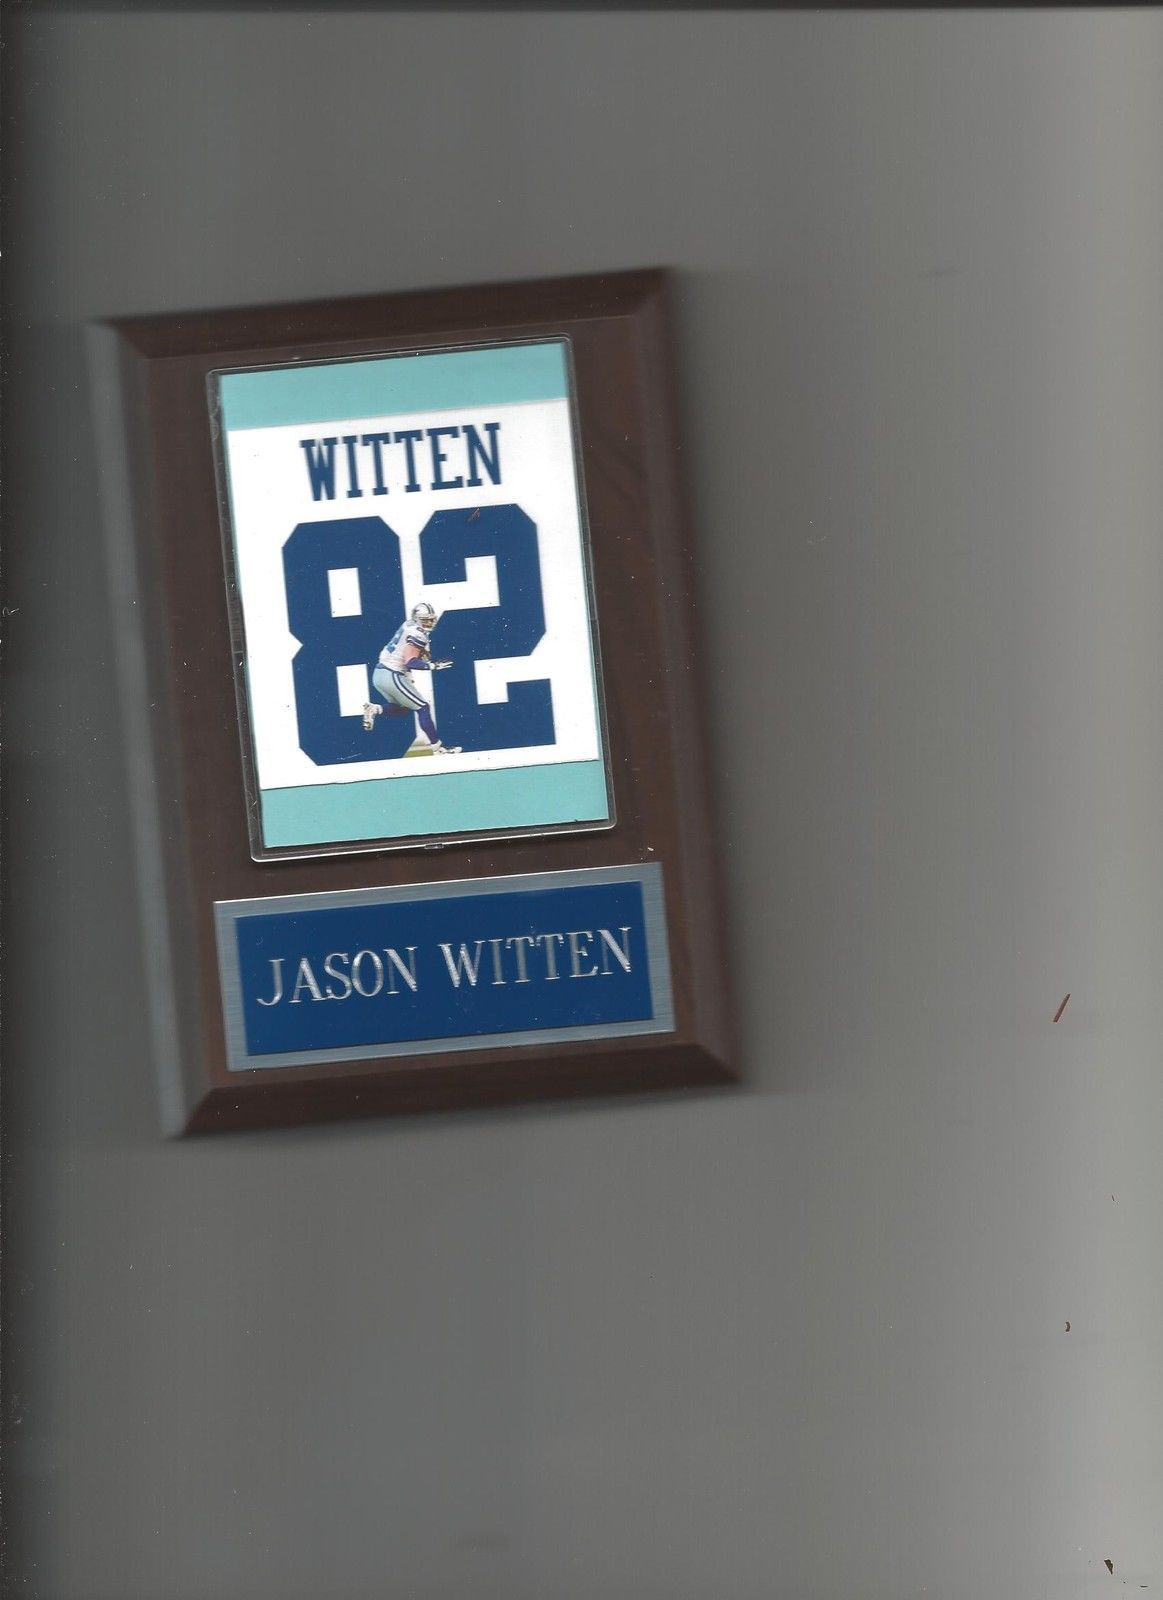 Primary image for JASON WITTEN JERSEY PLAQUE DALLAS COWBOYS FOOTBALL NFL